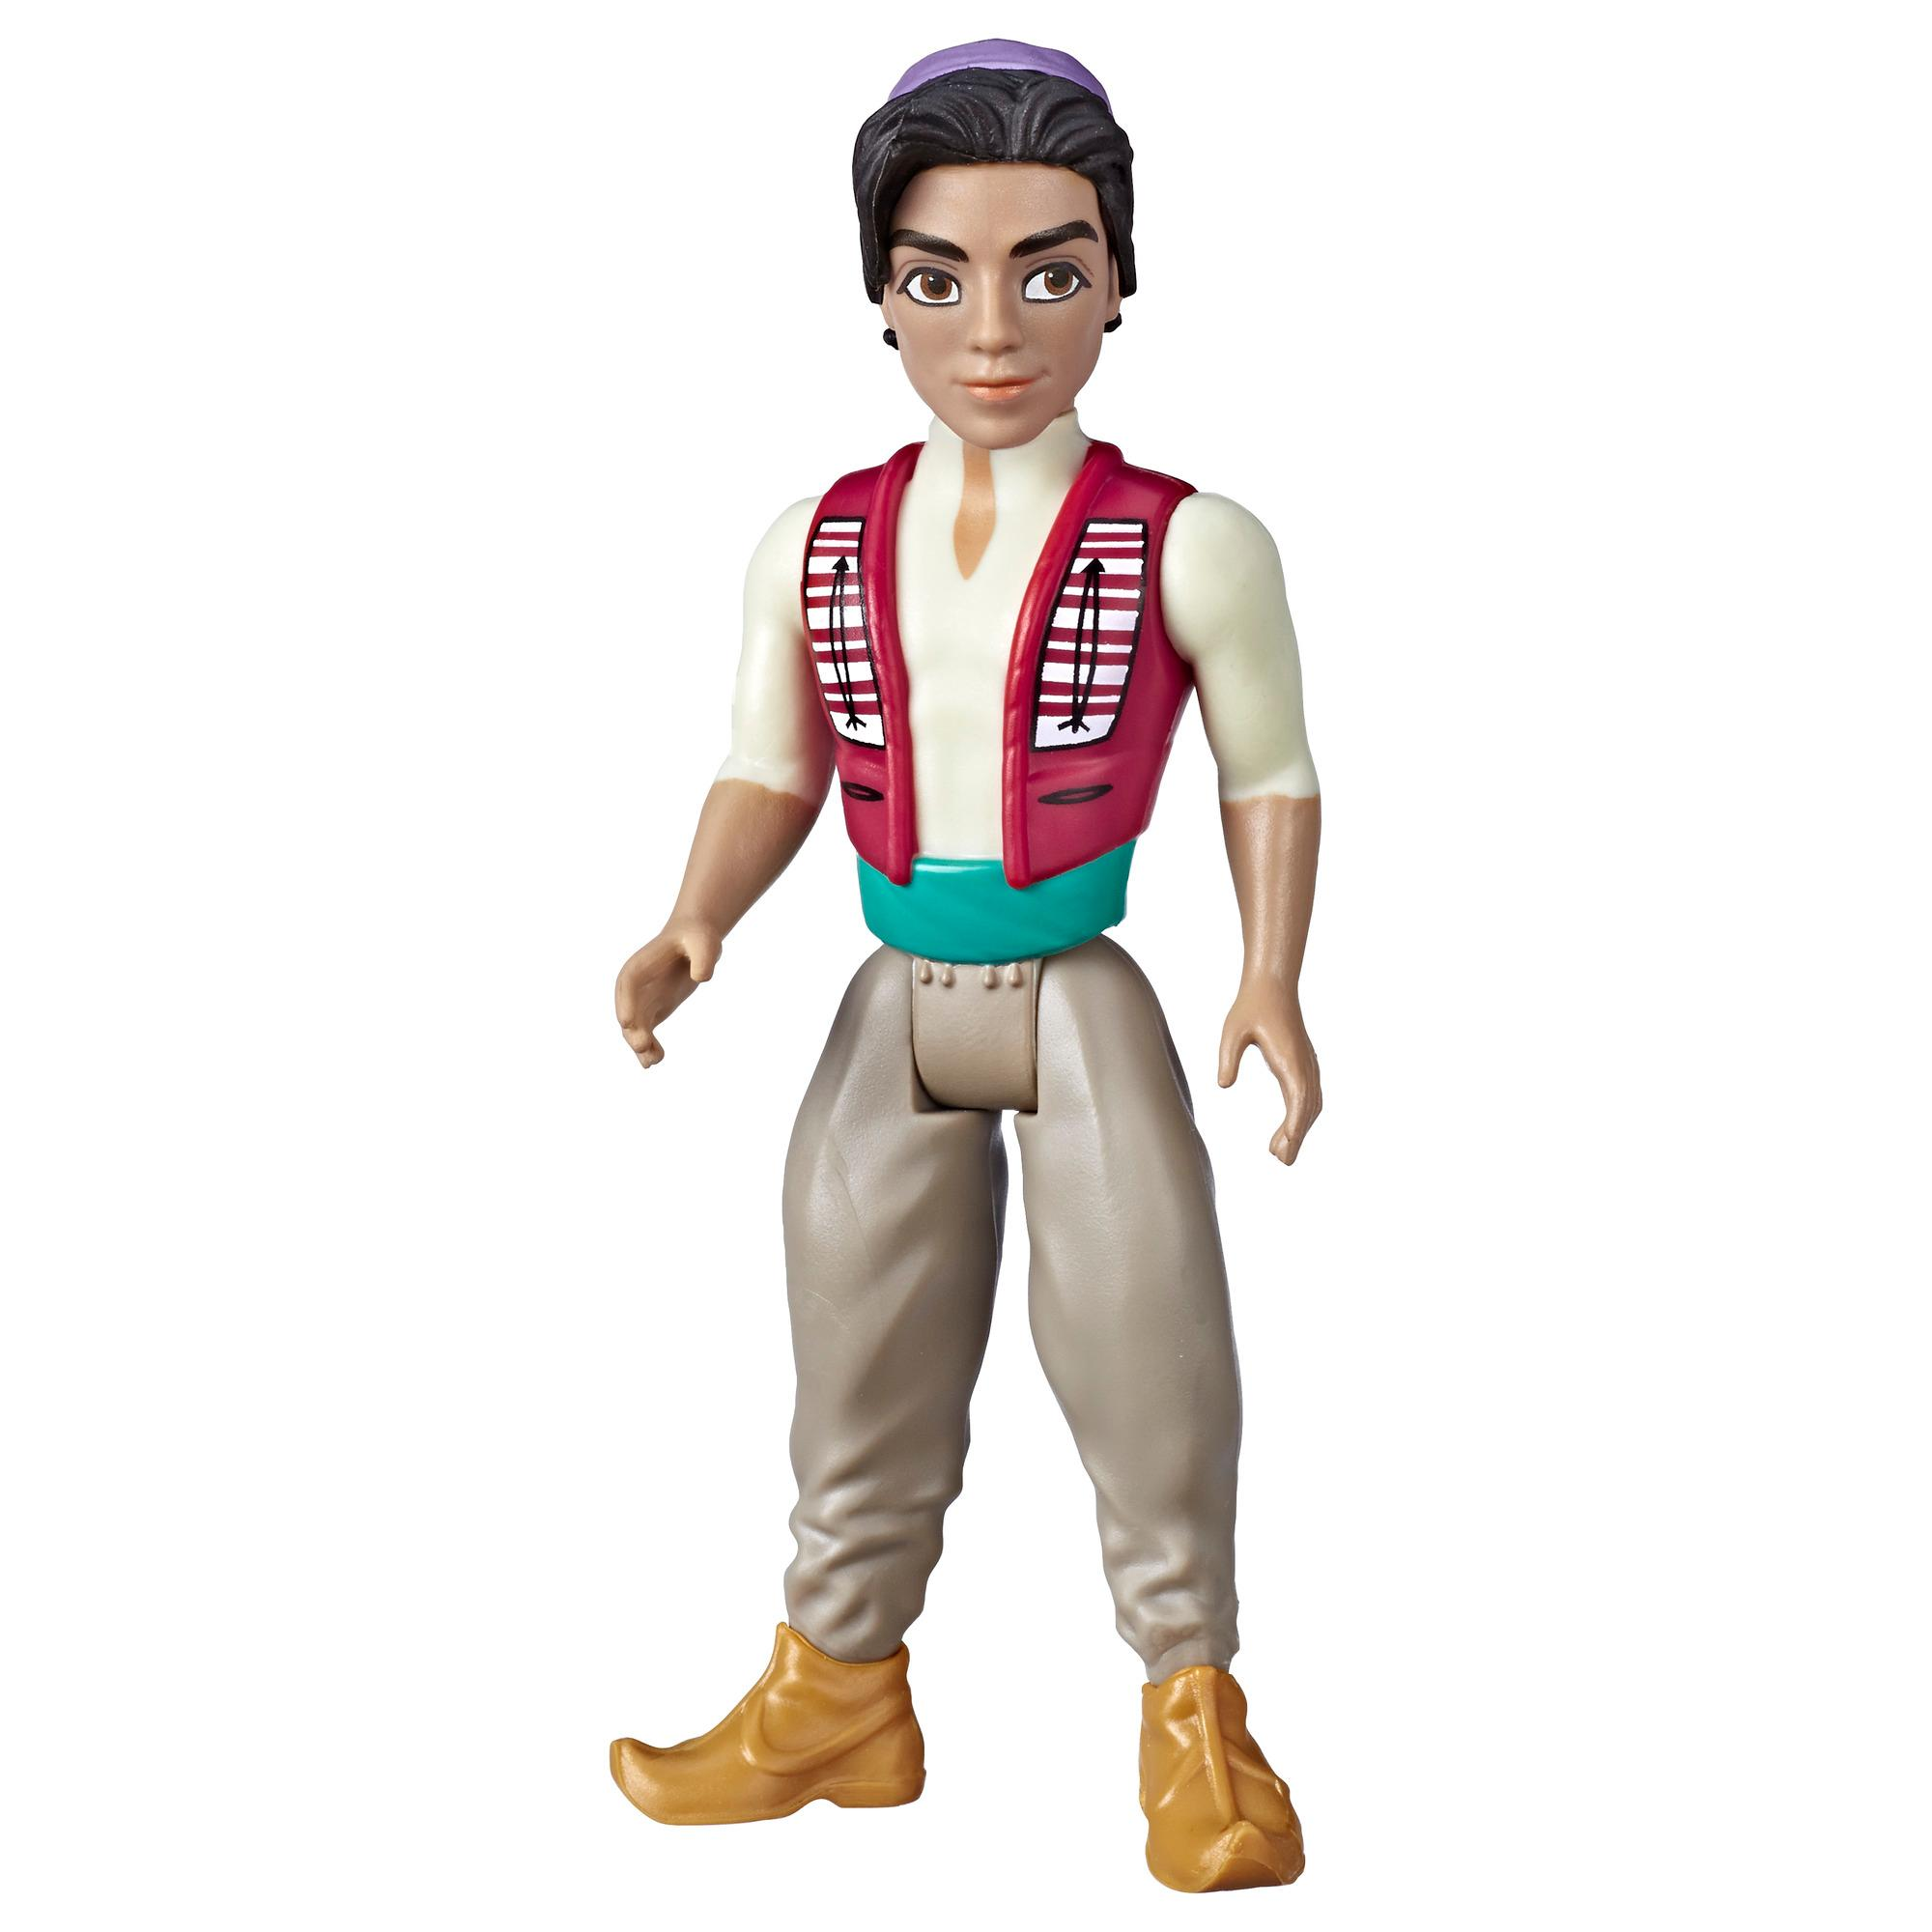 Disney Aladdin Collectible Small Doll Inspired by Disney's Live-Action Movie, Toy for Kids Ages 3 and Up, 3.5 Inches